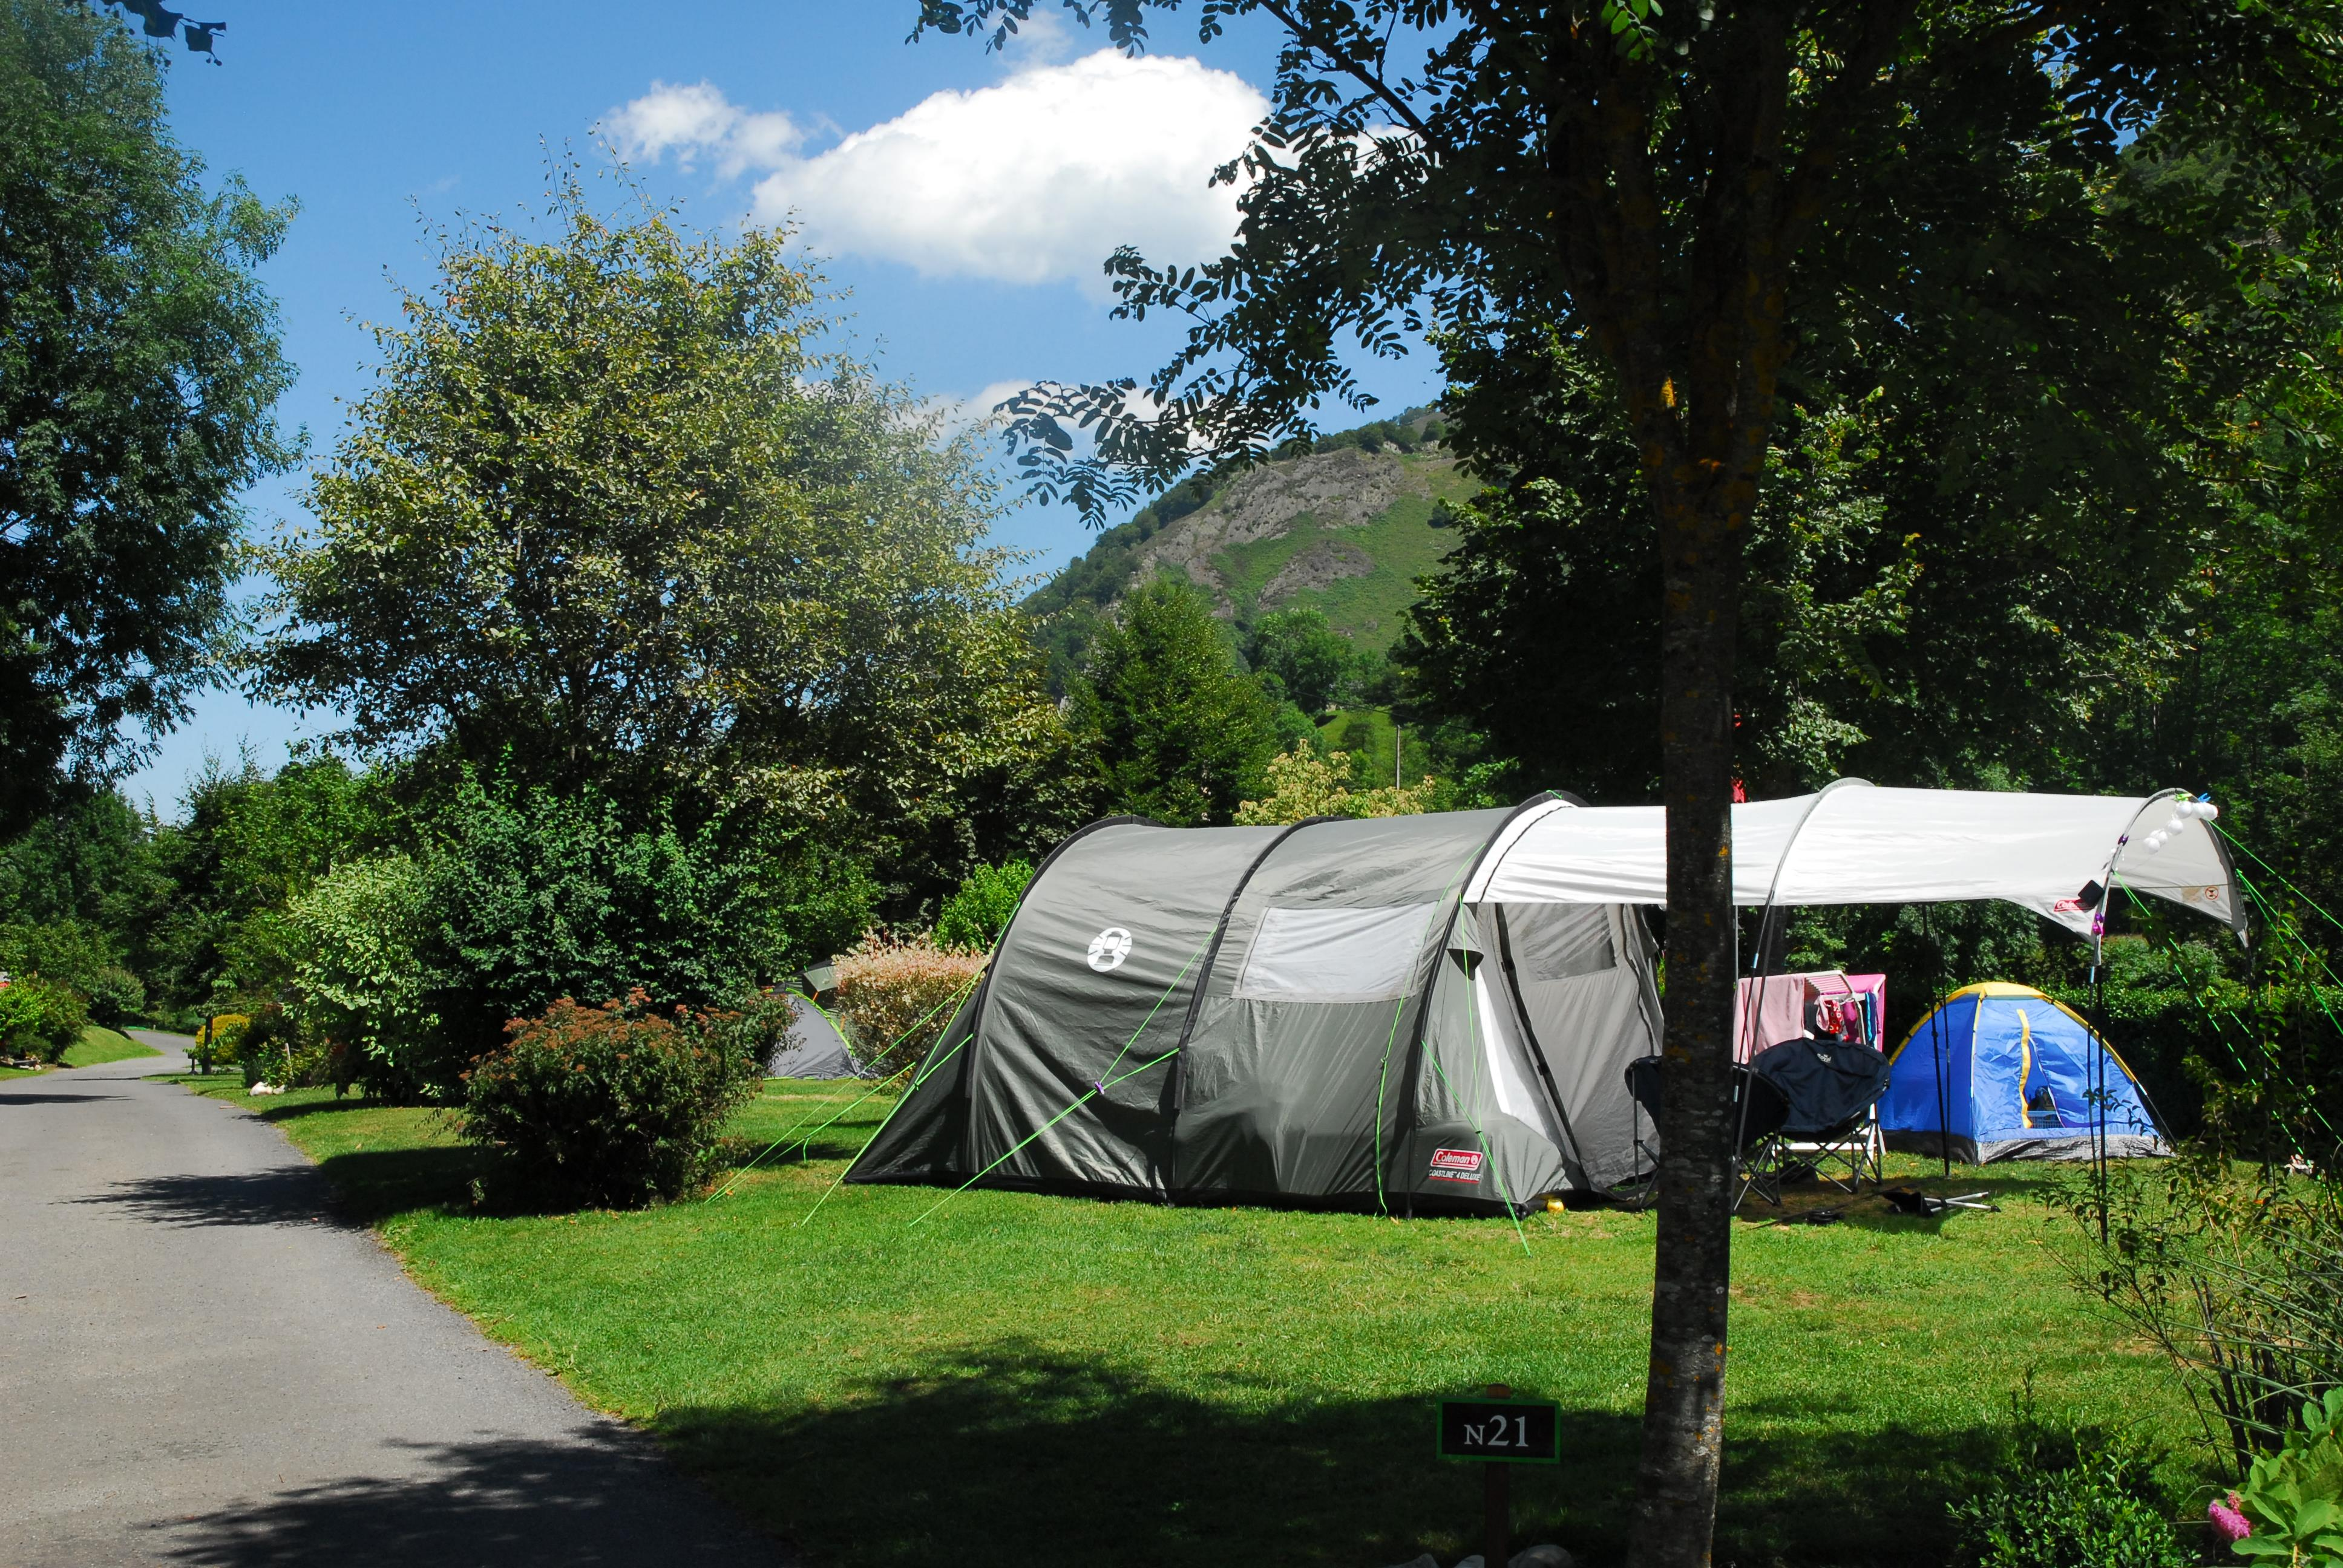 Camping Pyrenees Natura, Estaing, Hautes-Pyrénées